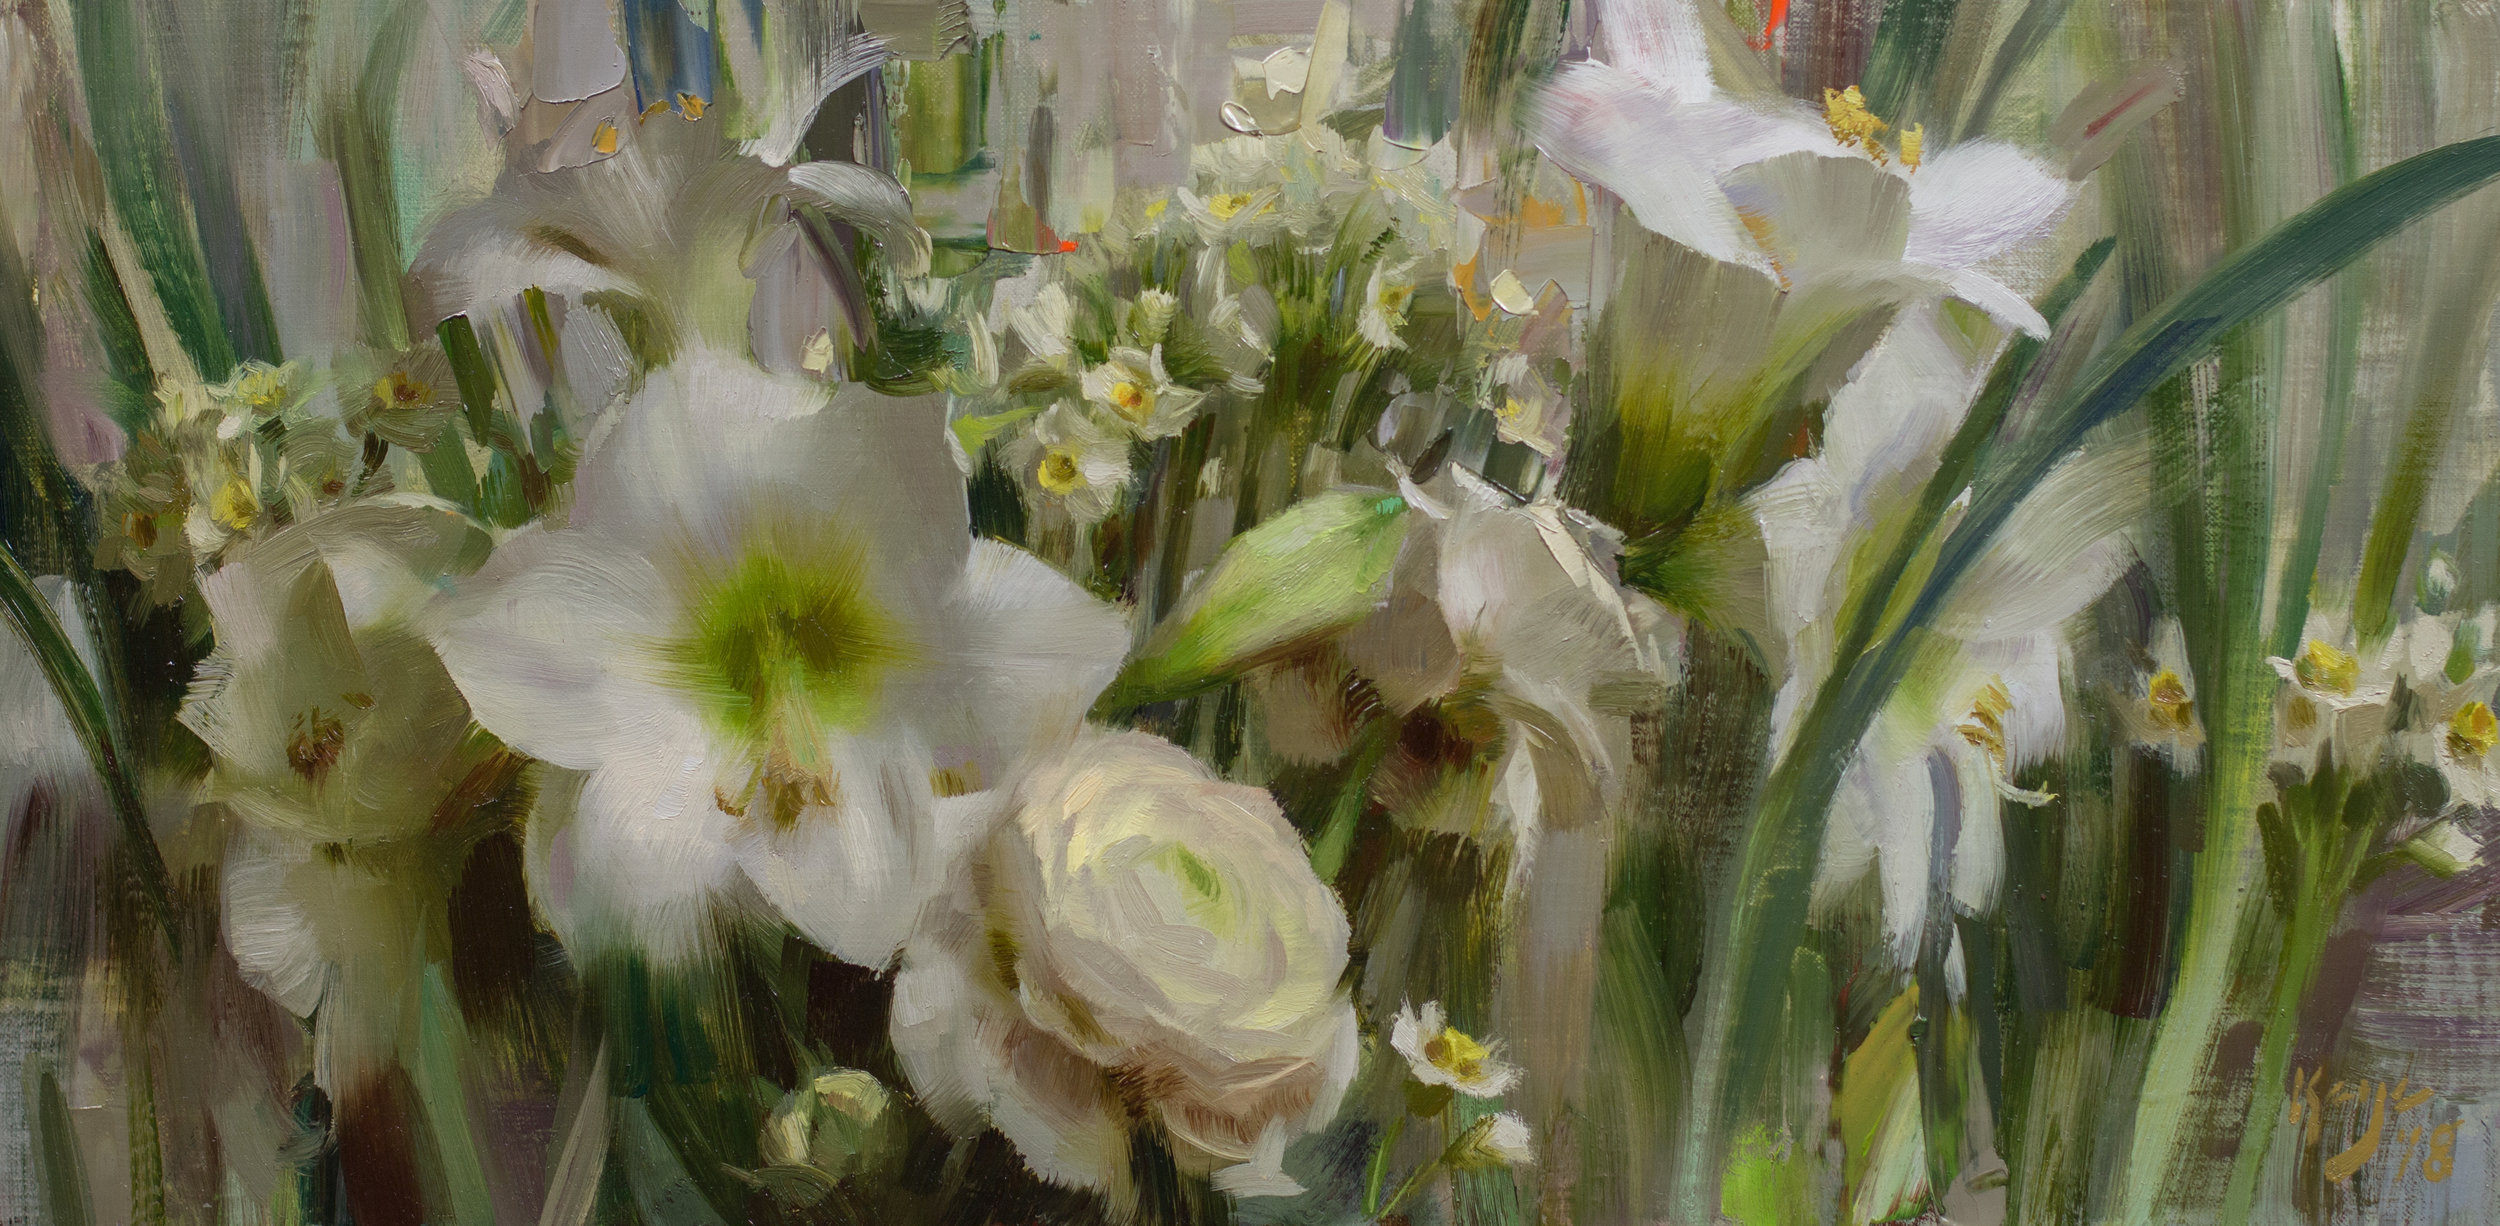 Les Fleurs Blanches. 10 x 20 inches, oil on linen